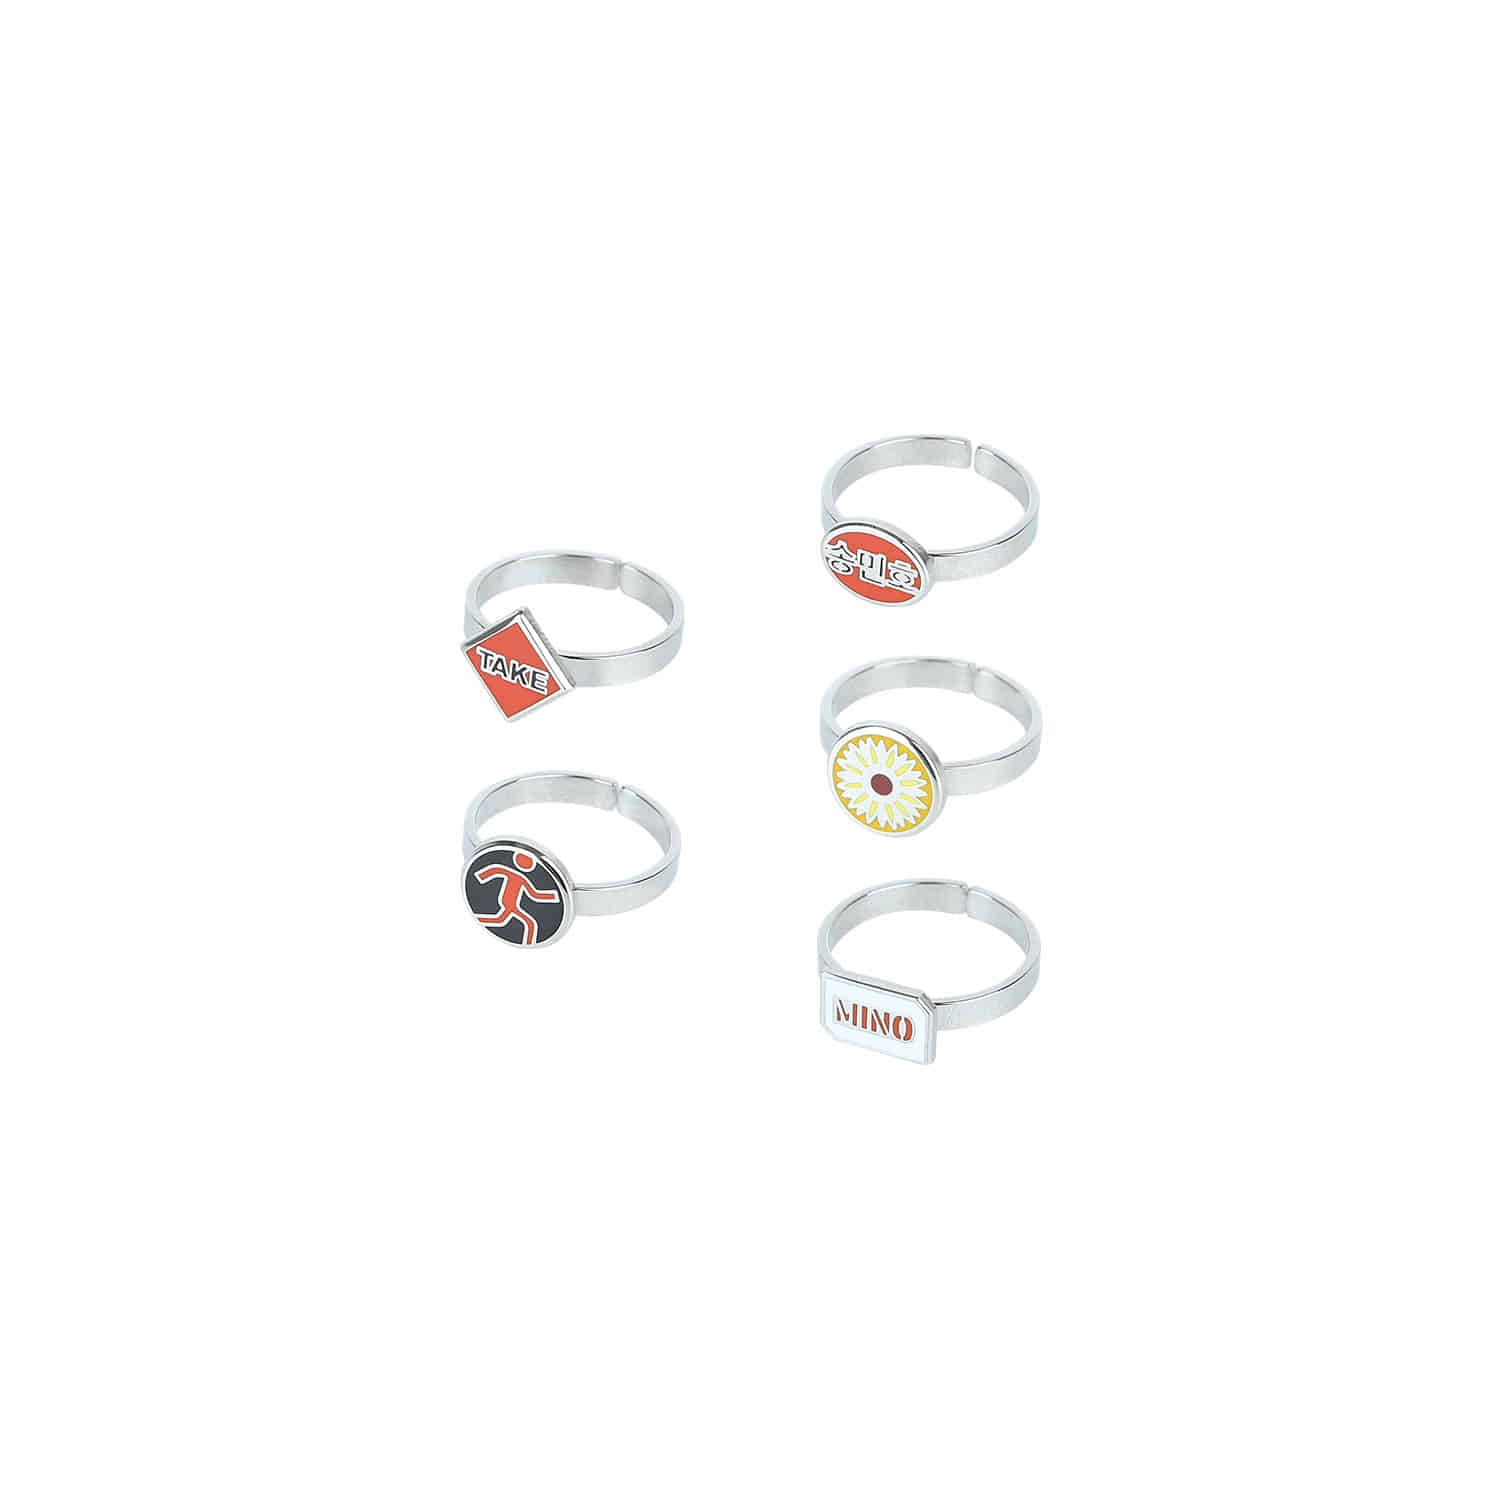 [TAKE] MINO RINGS SET